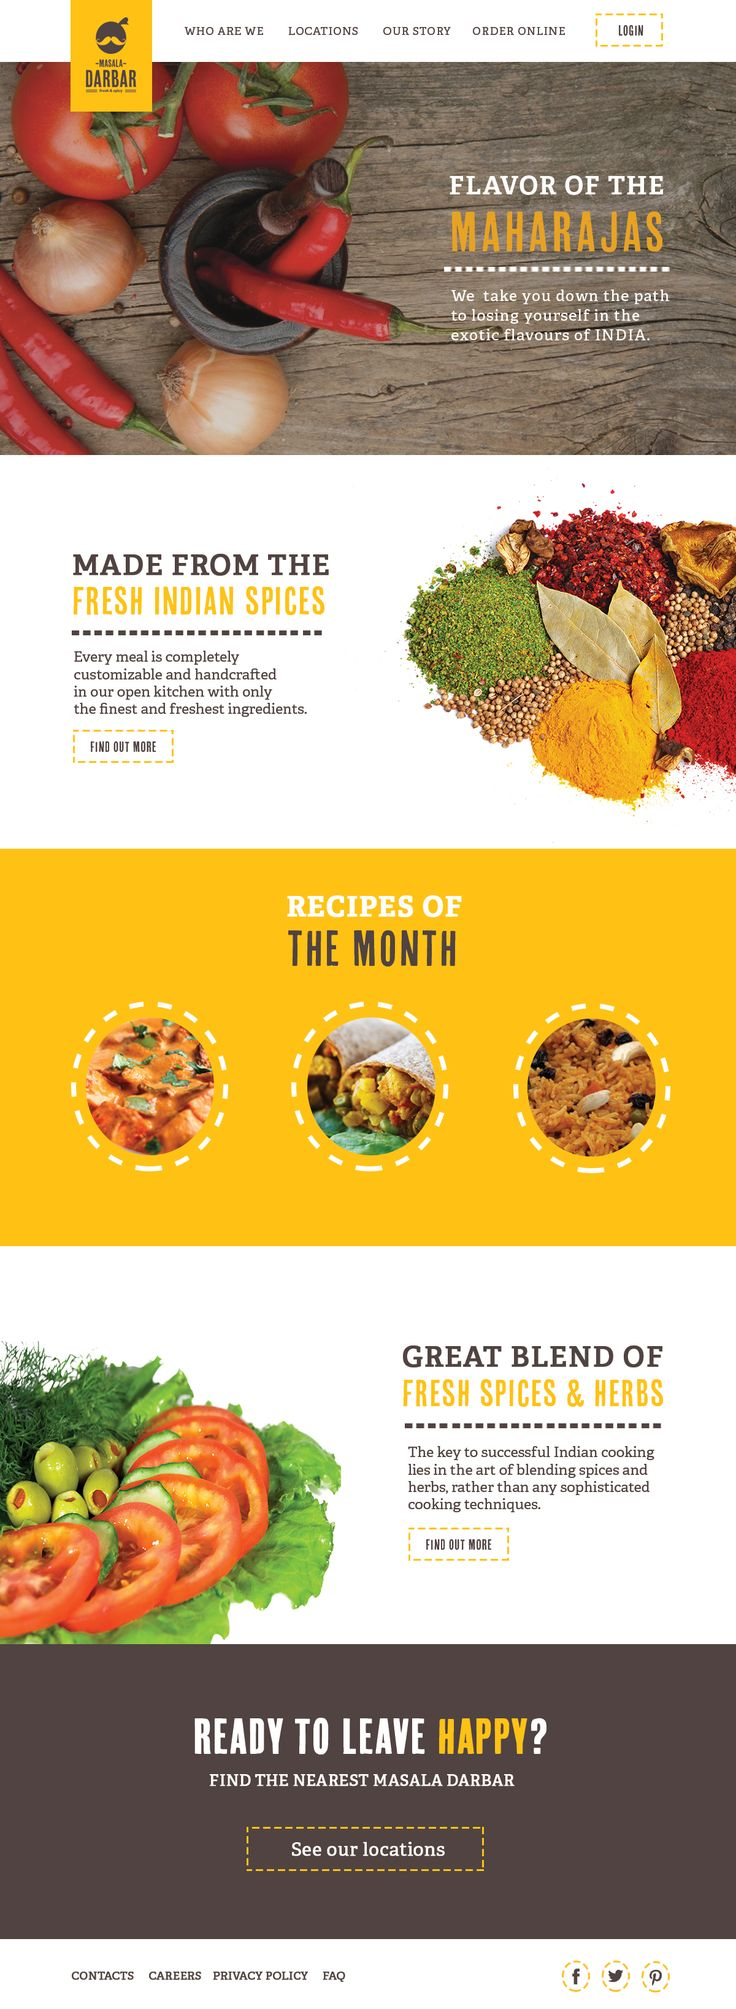 I like the large, bold use of imagery and contrasting color. Simple, clean layout. Masala-darbar